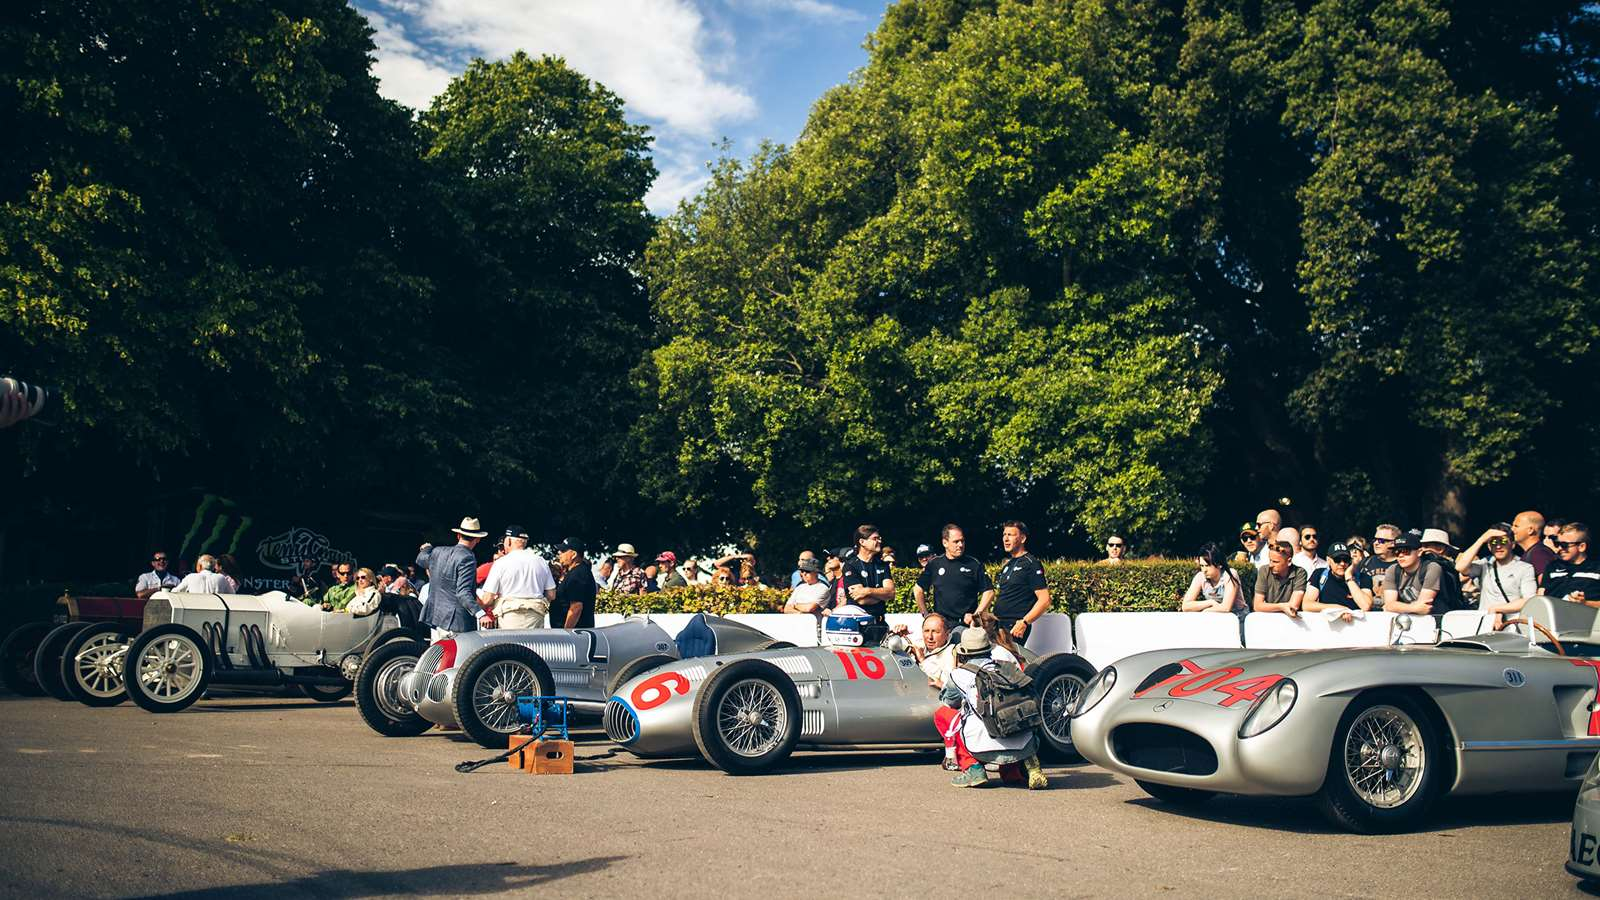 Gallery] 125 Years of Mercedes-Benz motorsport at FOS